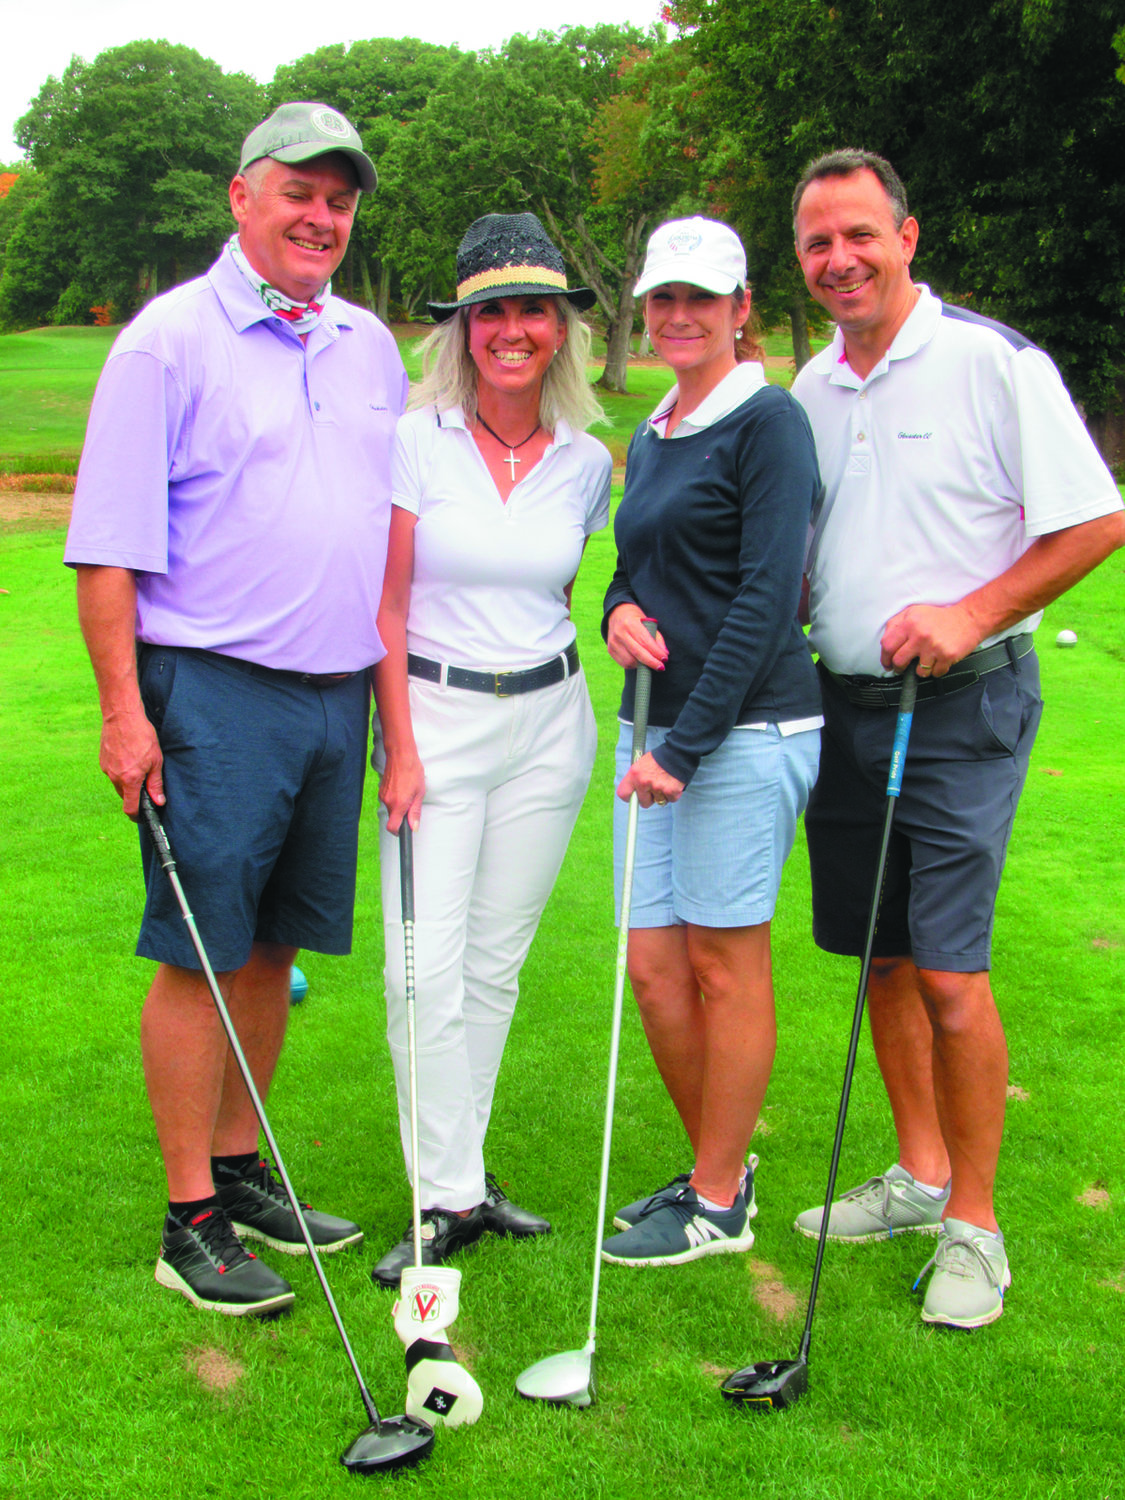 MIGHTY MEMBERS: Among the many GCC members who again turned out to support the JMCE Co-Ed Memorial Golf Tournament are from left: Walter and Michy Geer and Tracy and Dewey Uriati.